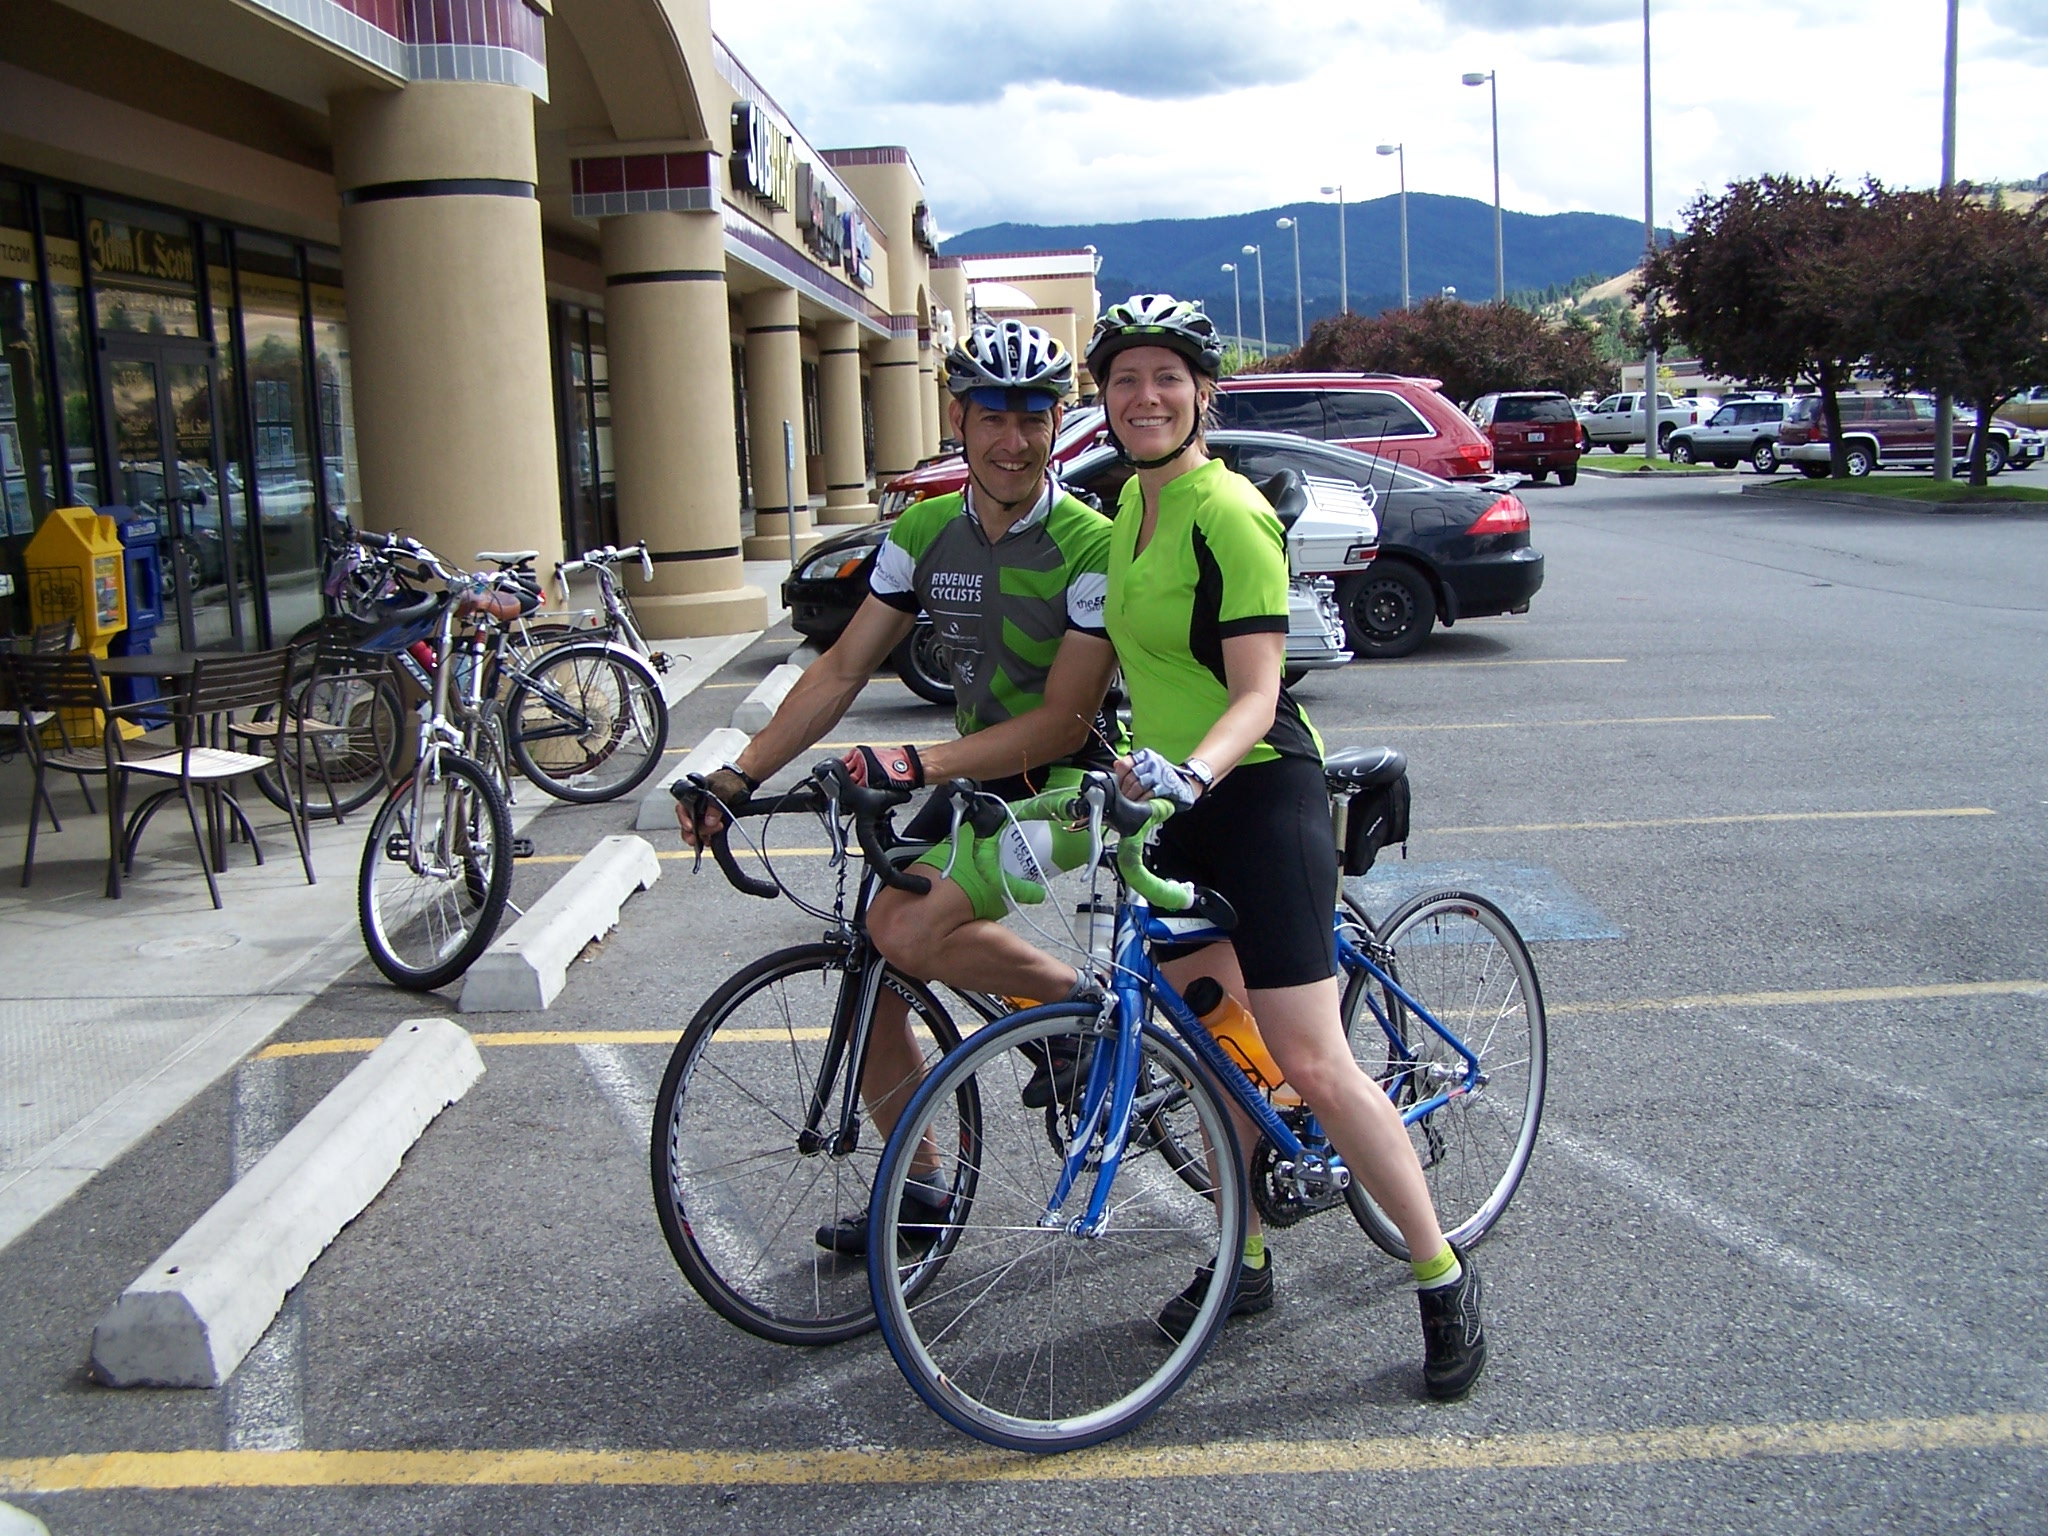 Eric Abbott and Barb Chamberlain on a bike ride.